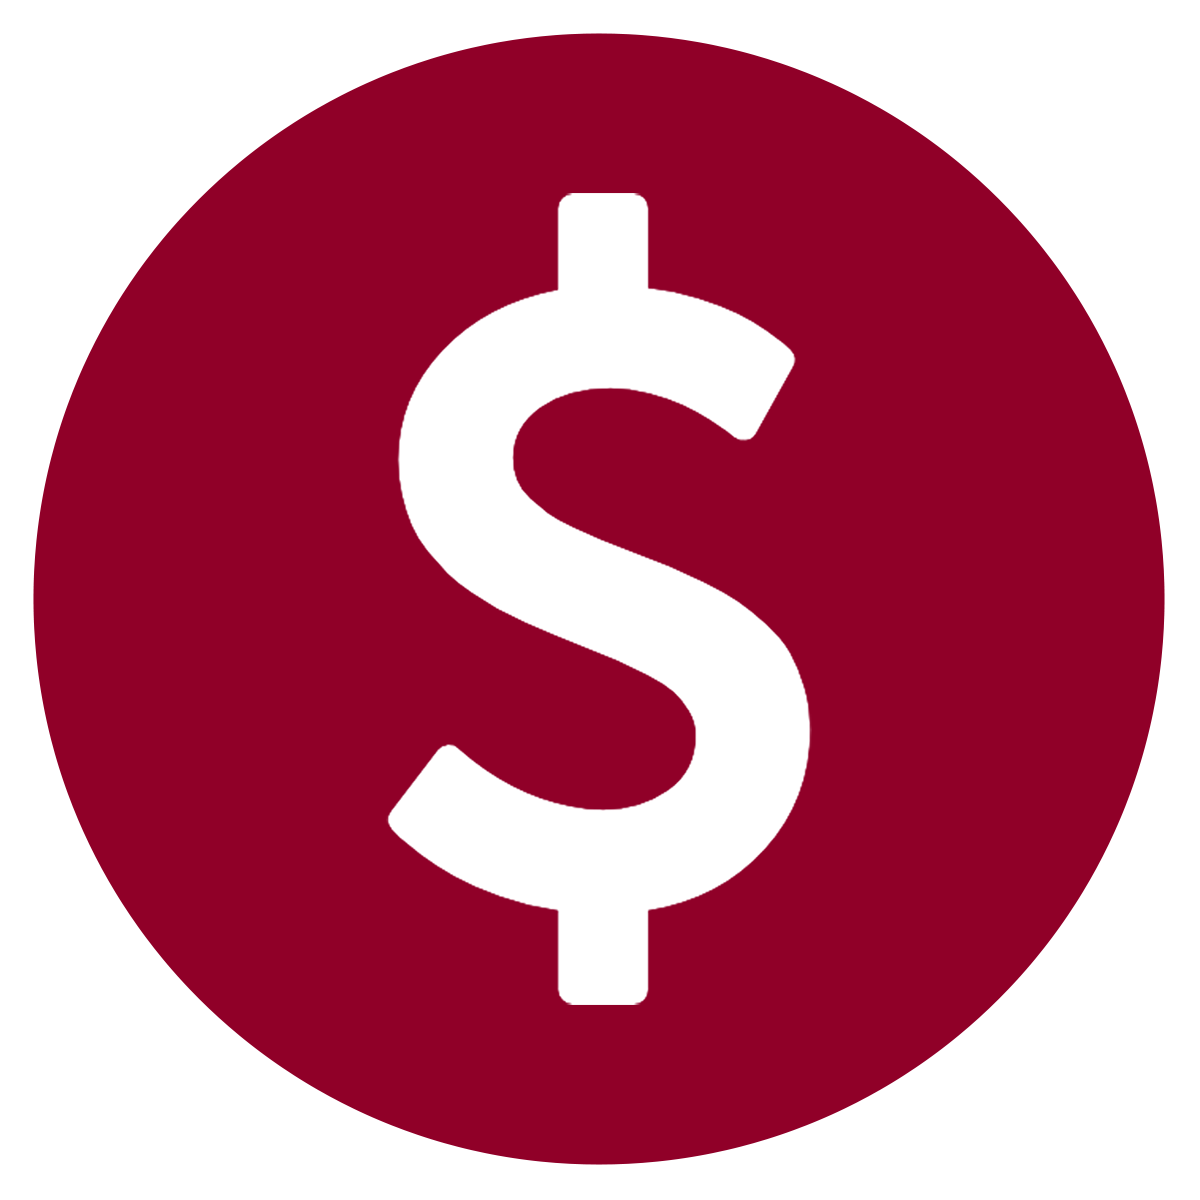 Budget Committee Icon